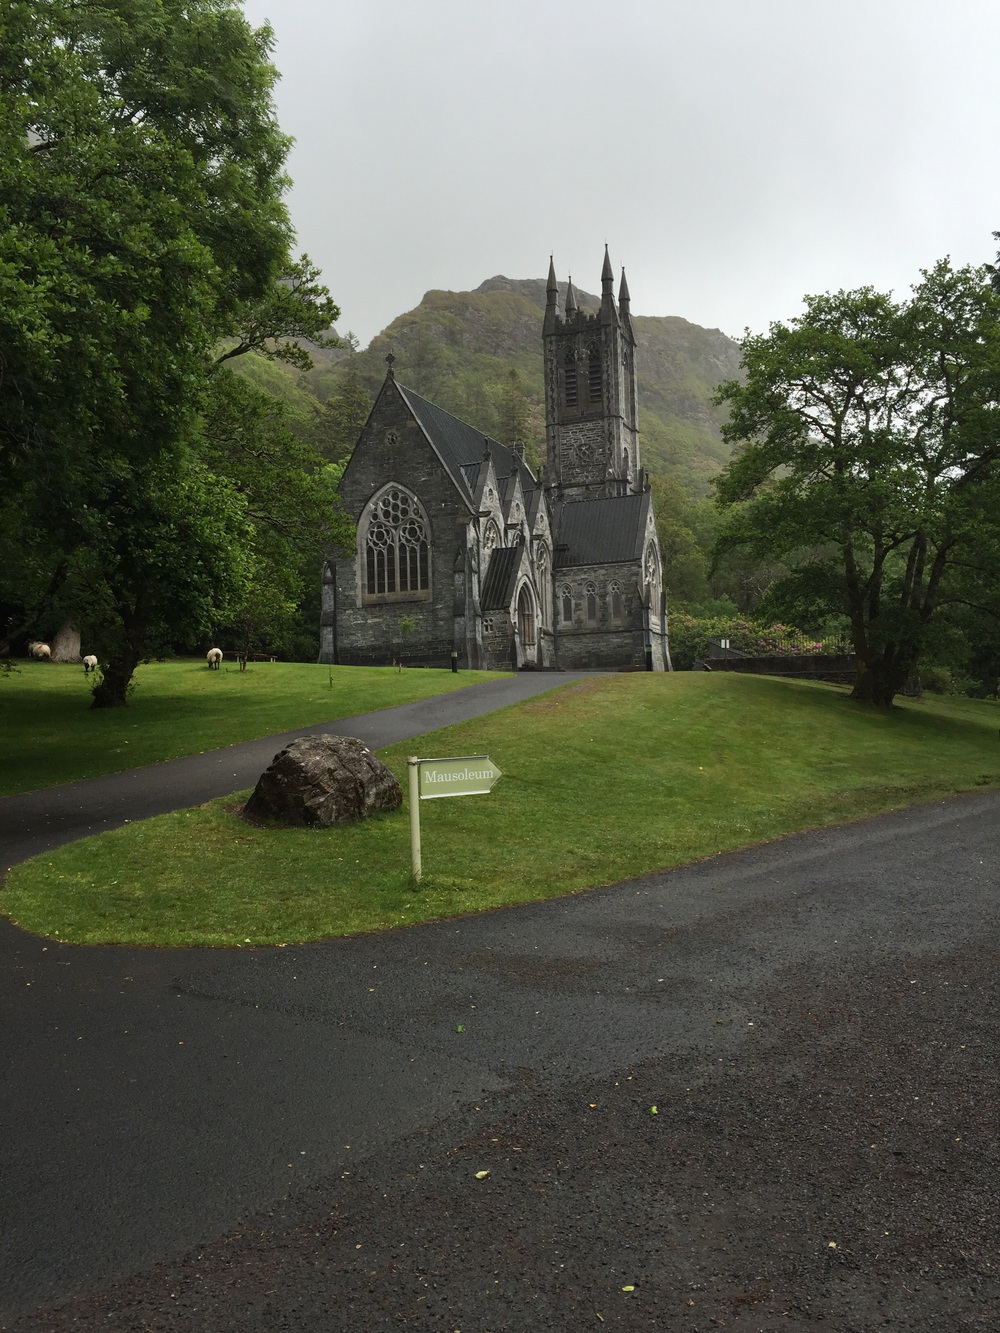 The Gothic chirch